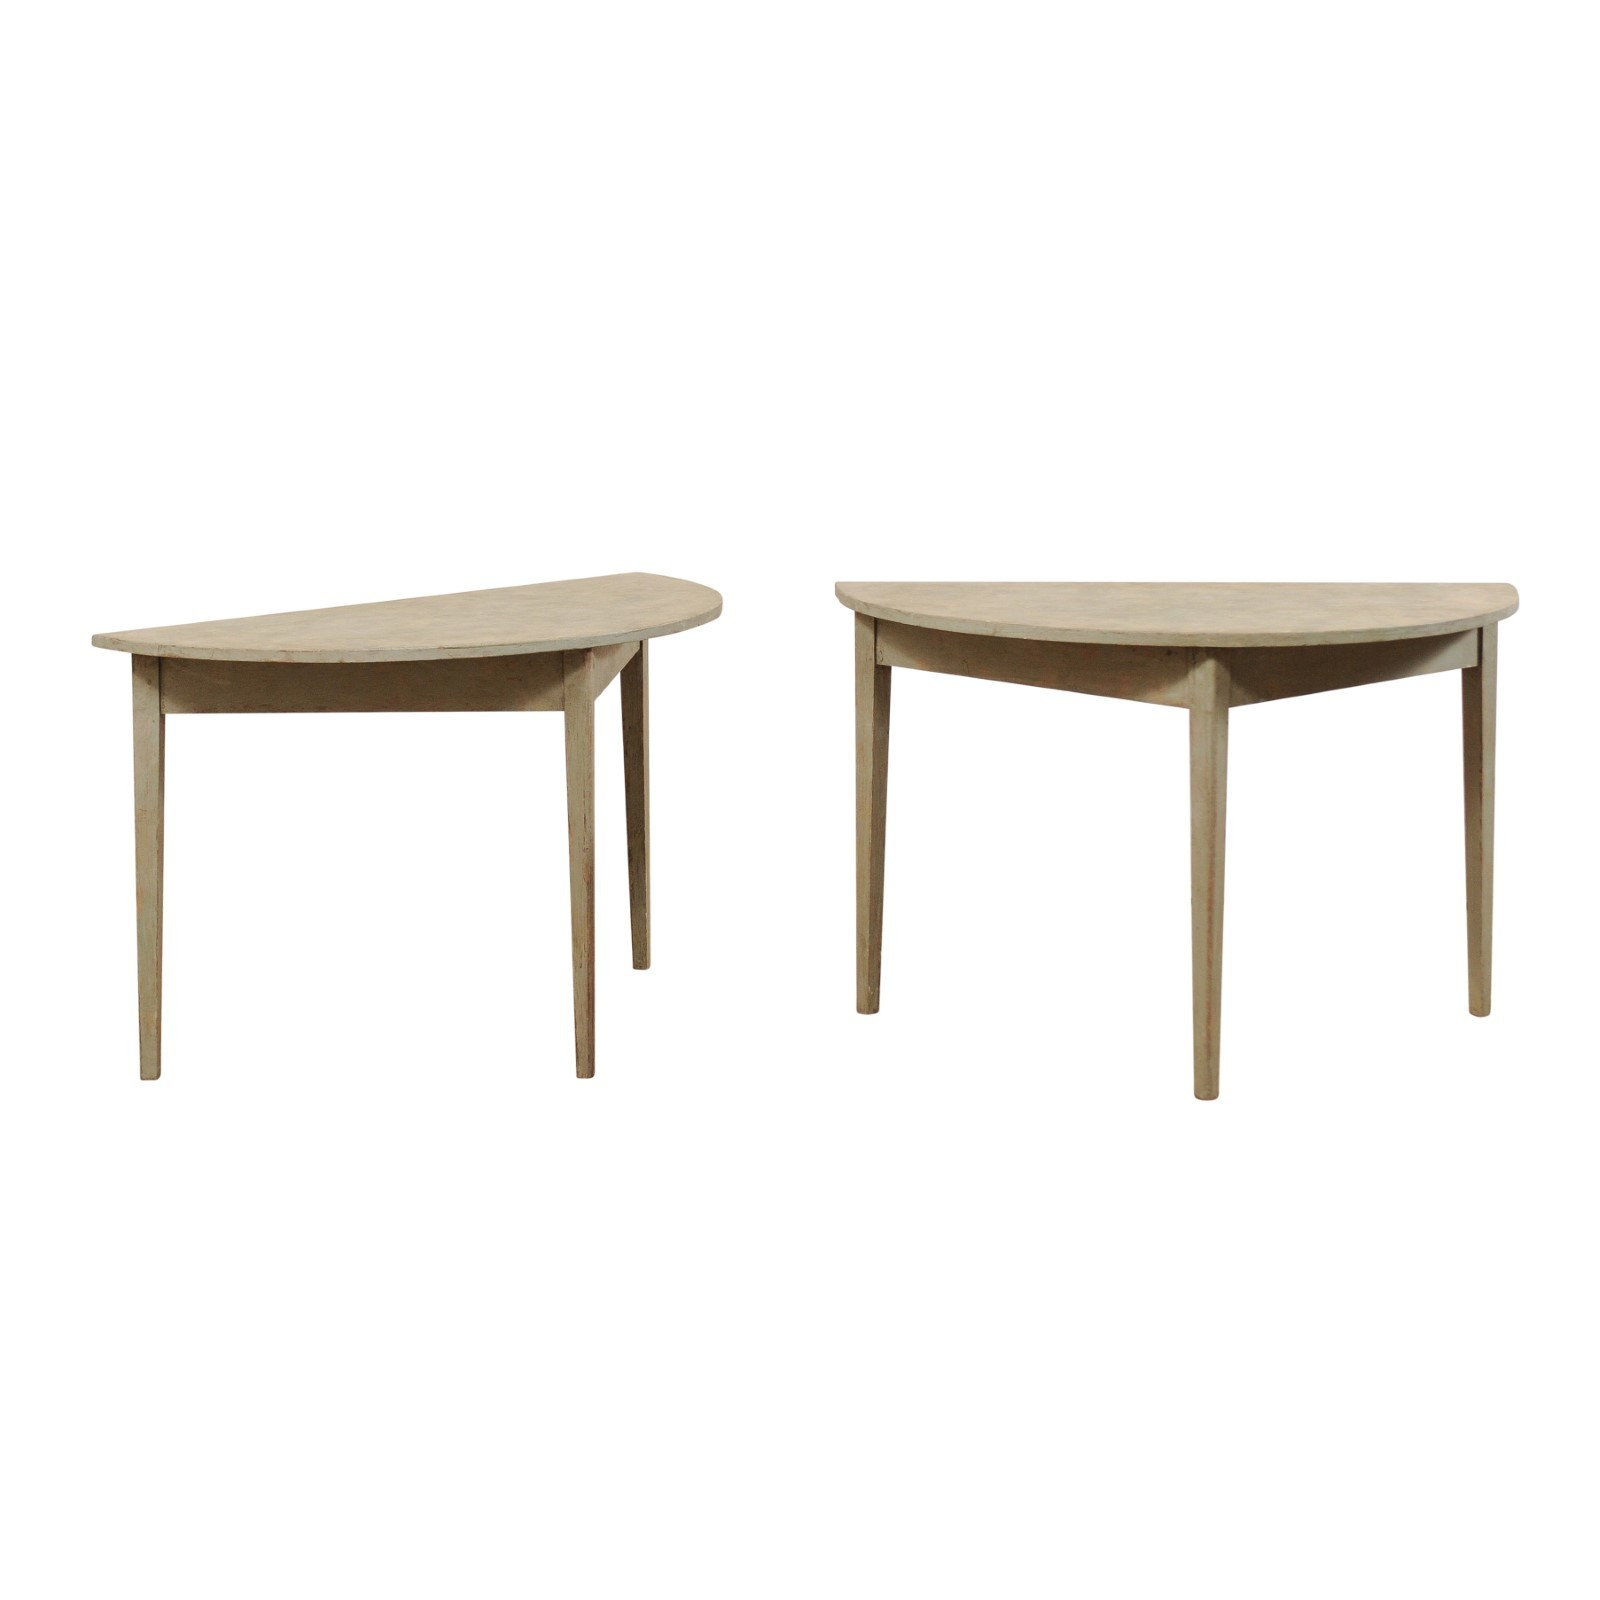 Pair Demi-Lune Tables, 19th C. Sweden